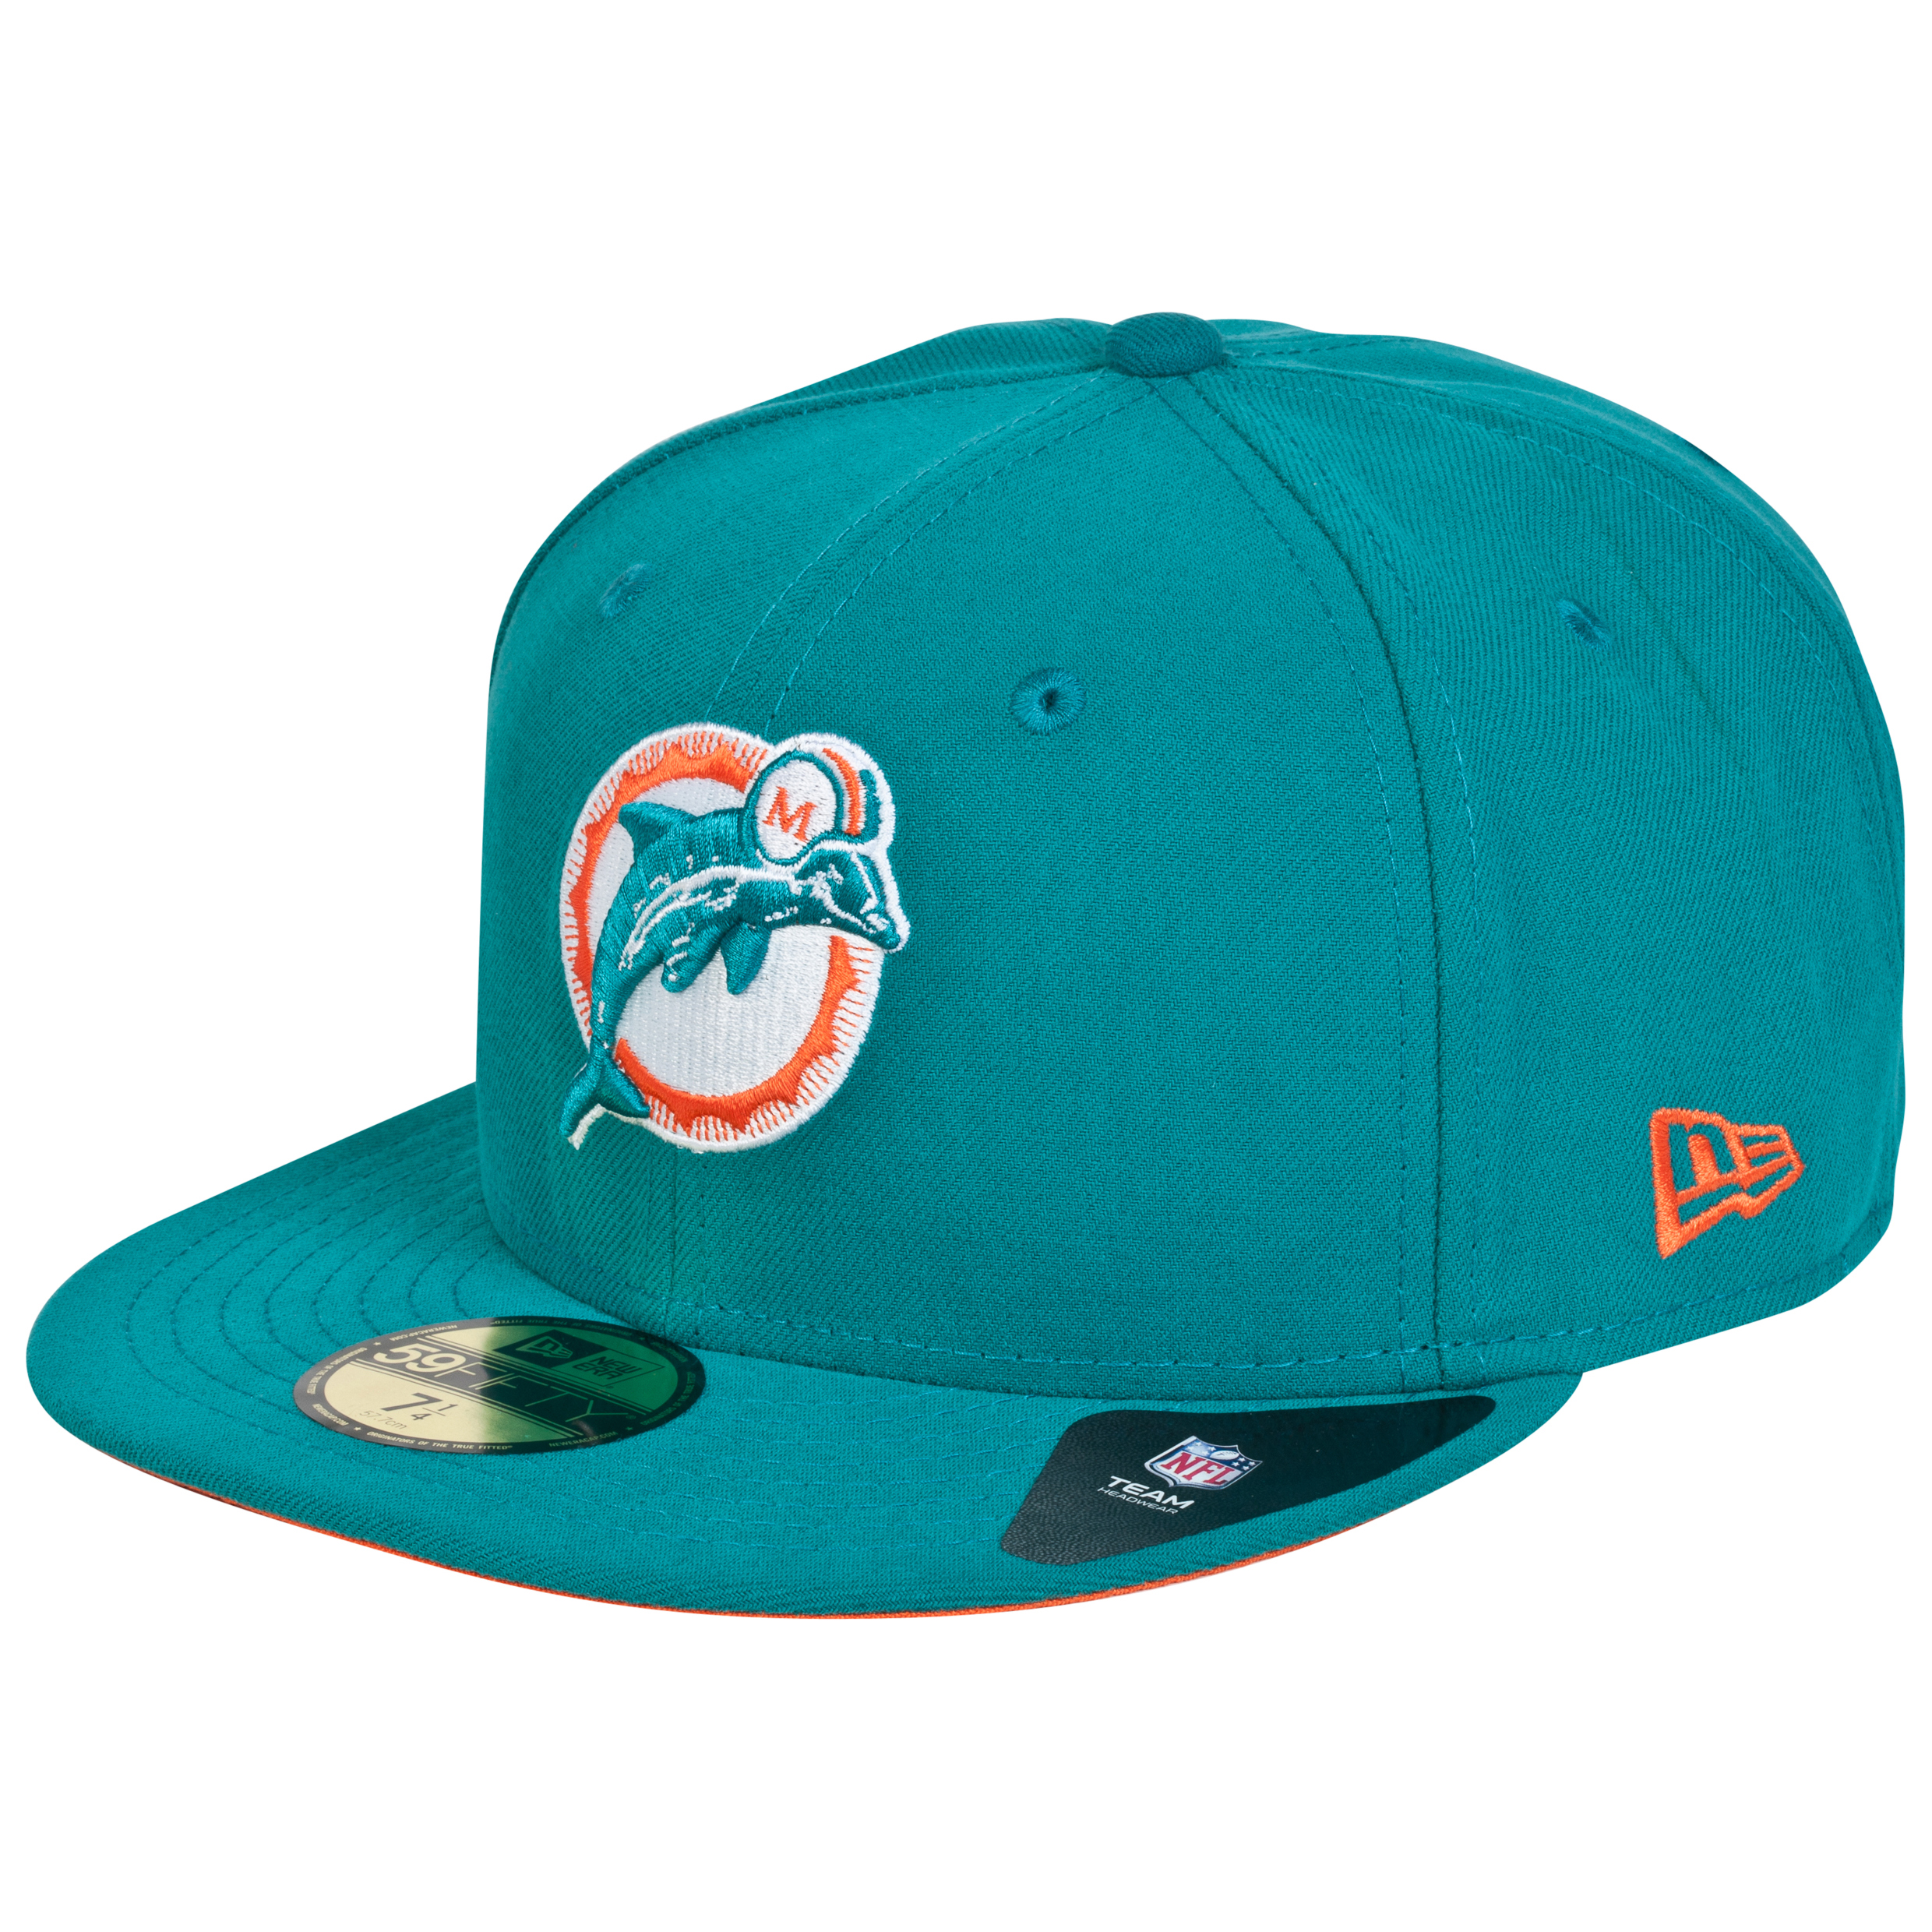 Miami Dolphins New Era 59FIFTY SB Side Patch Super Bowl VII Fitted Cap